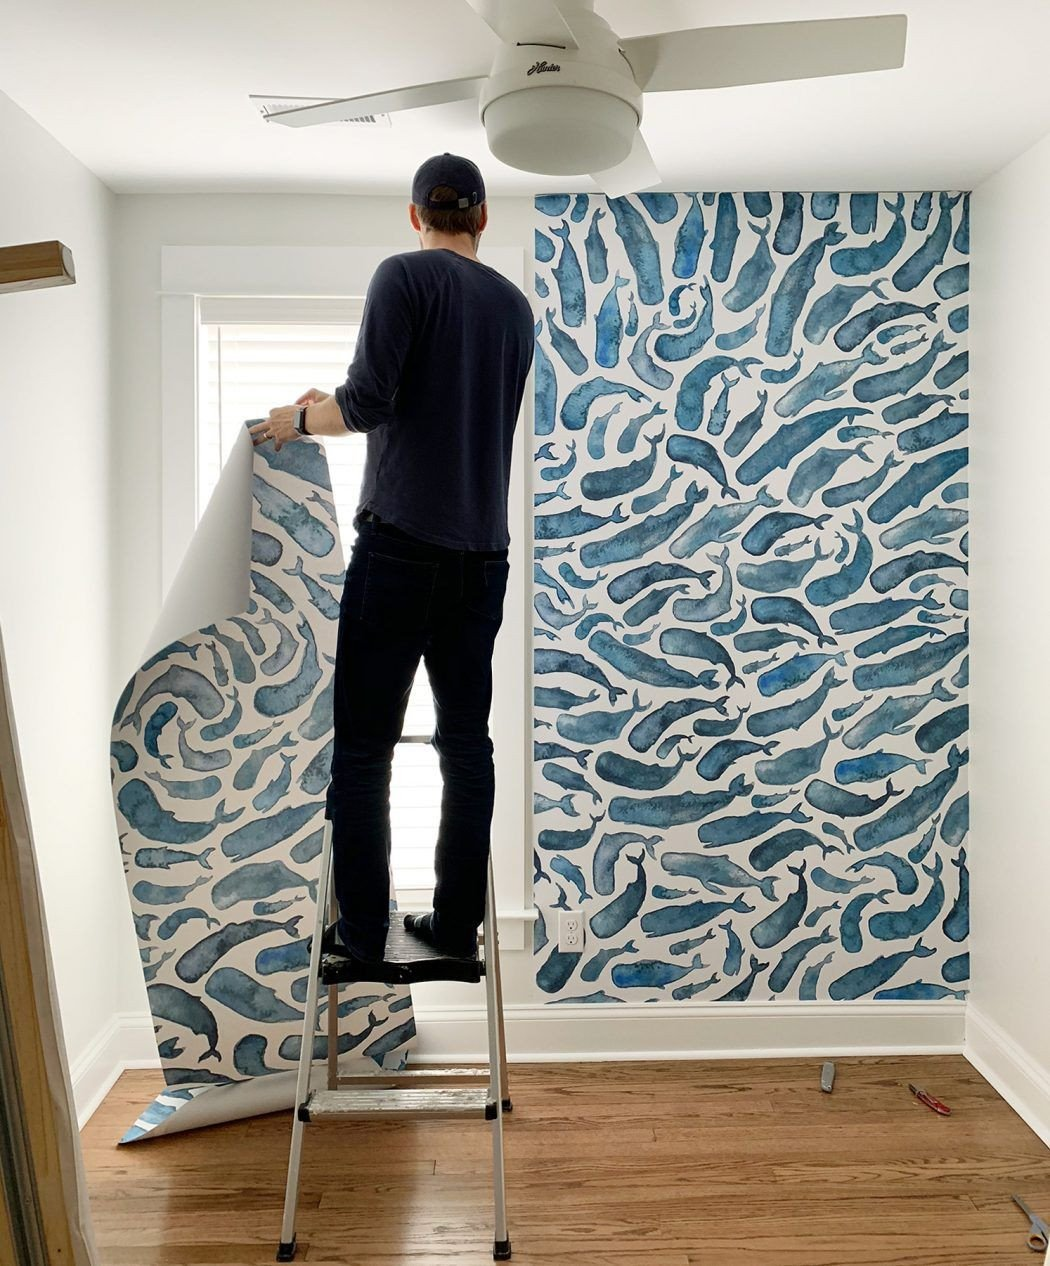 Wall Mural Ideas for Bedroom Awesome How to Install A Removable Wallpaper Mural